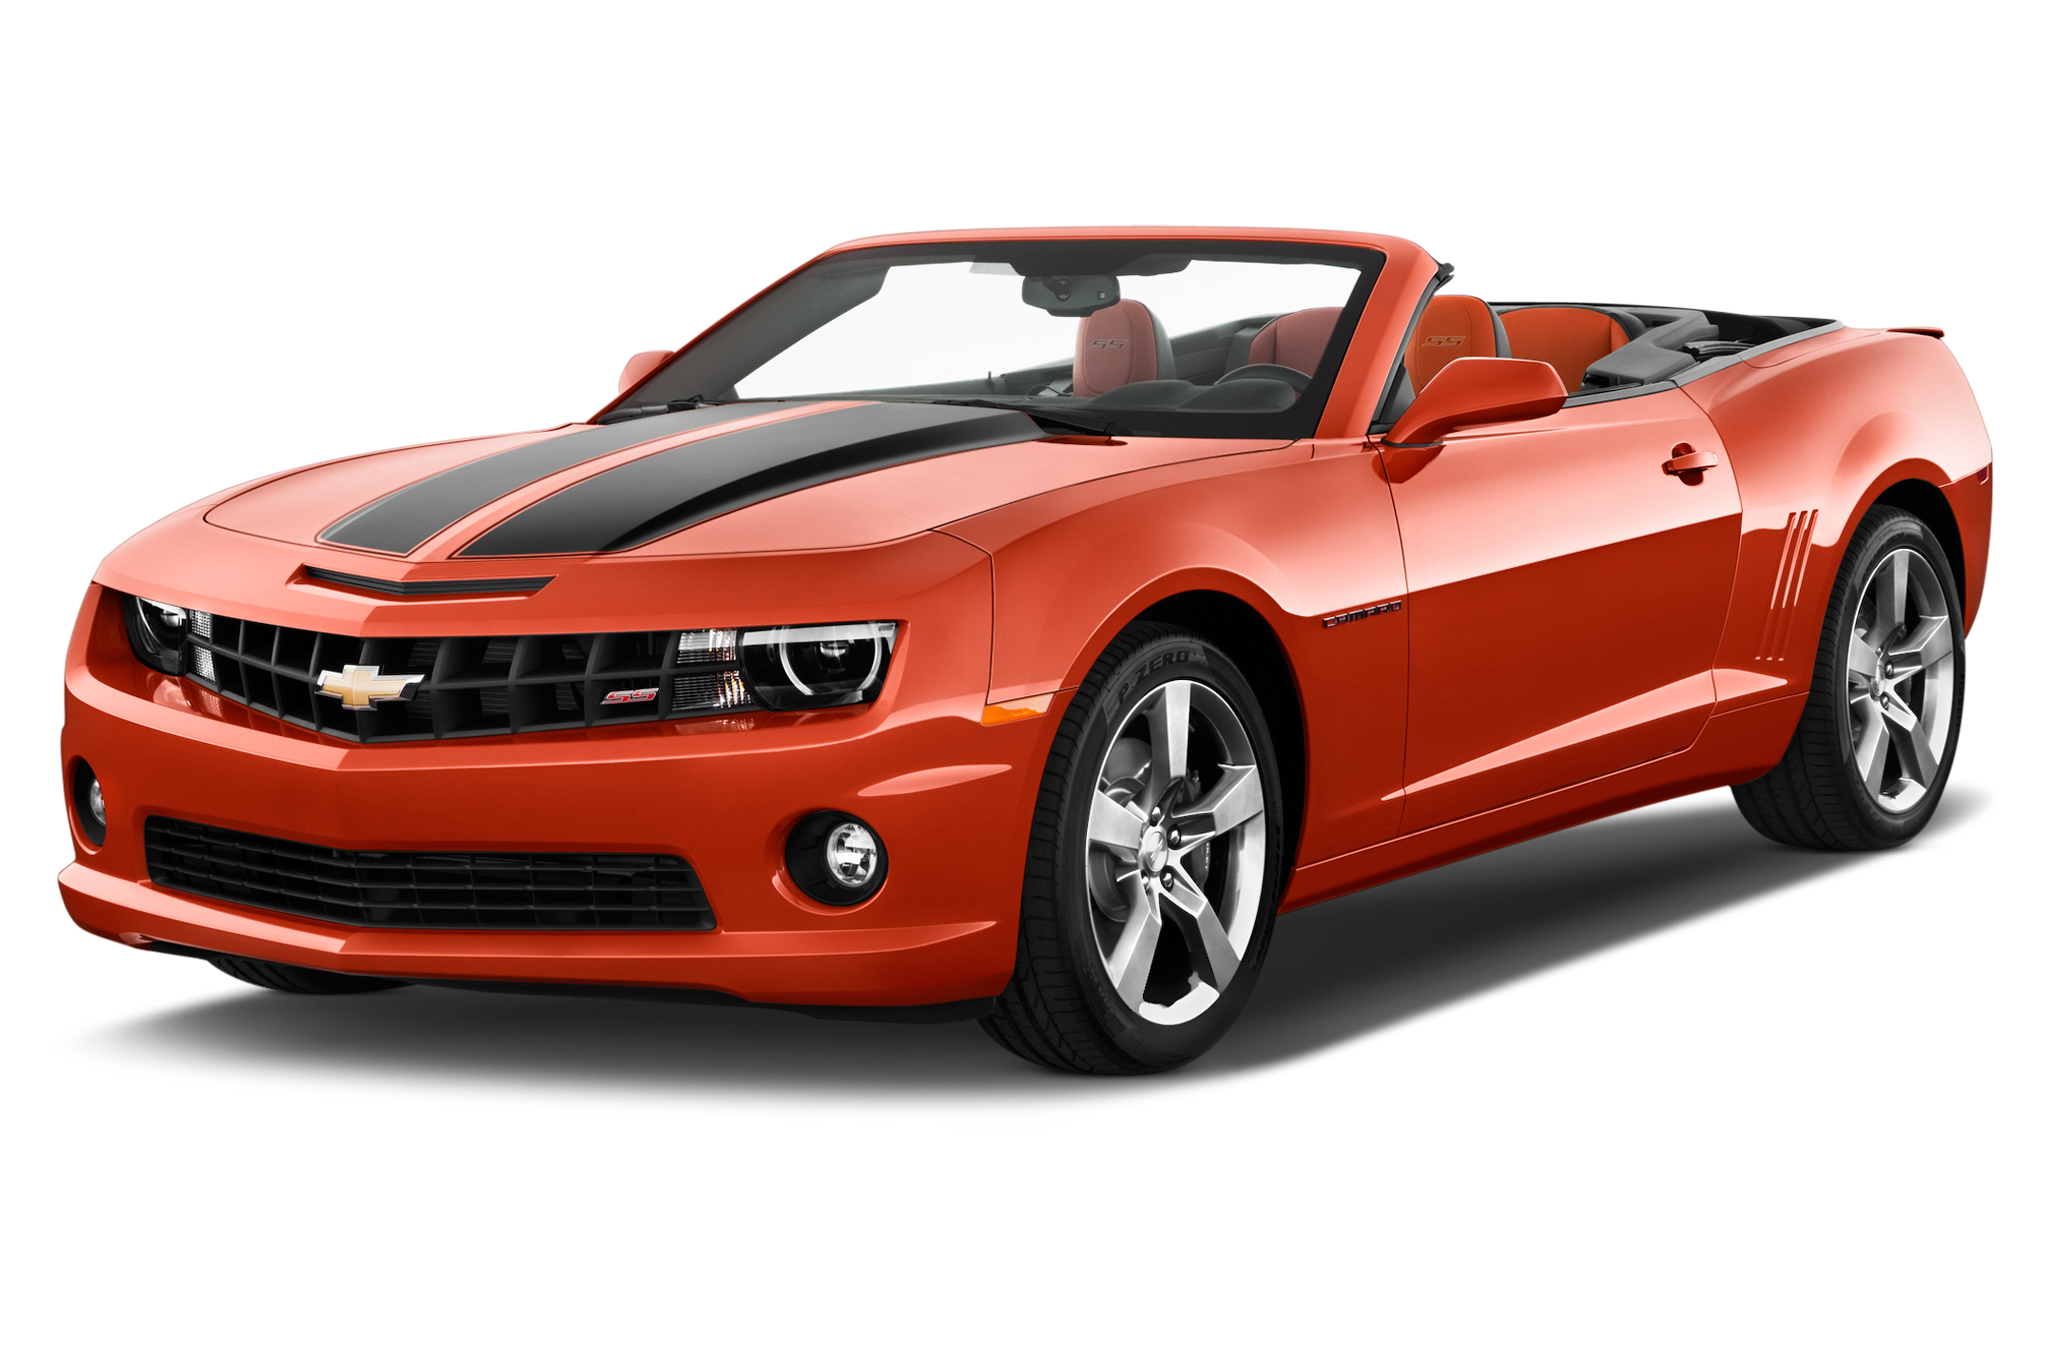 2011 chevrolet camaro ss convertible driven automobile. Black Bedroom Furniture Sets. Home Design Ideas